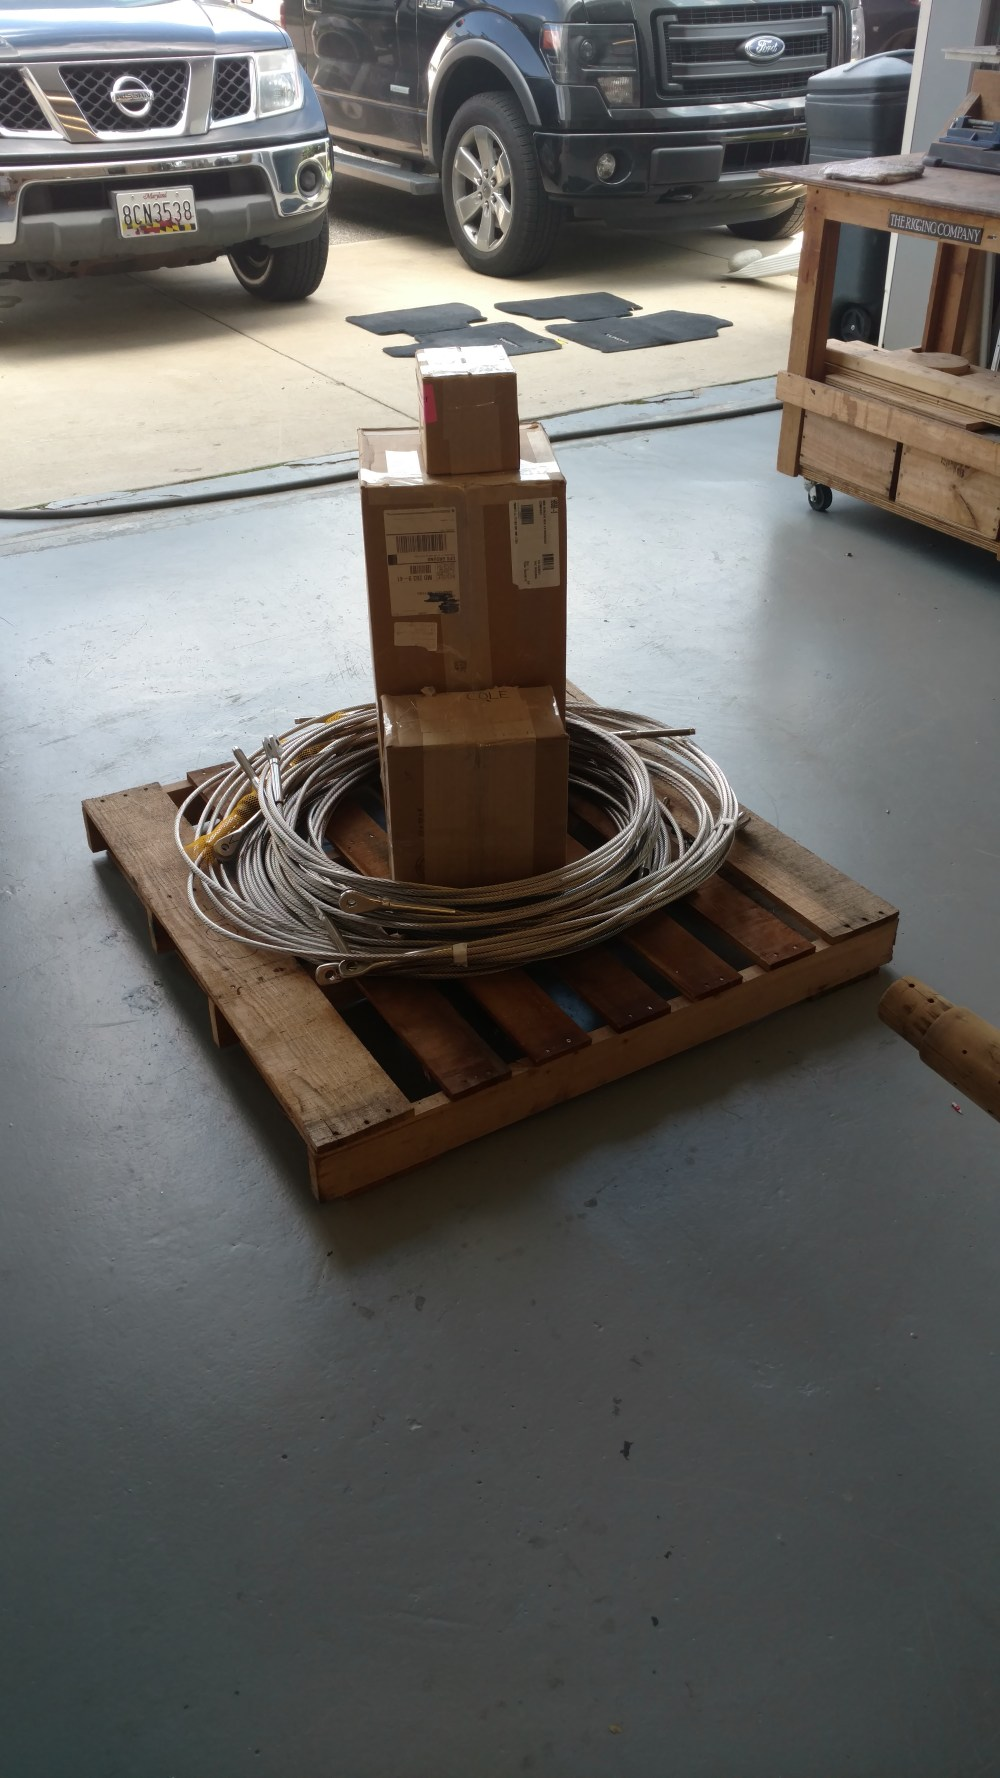 Mail order standing rigging. We'll ship you your brand standing rigging spraeders. Morgan OI 41